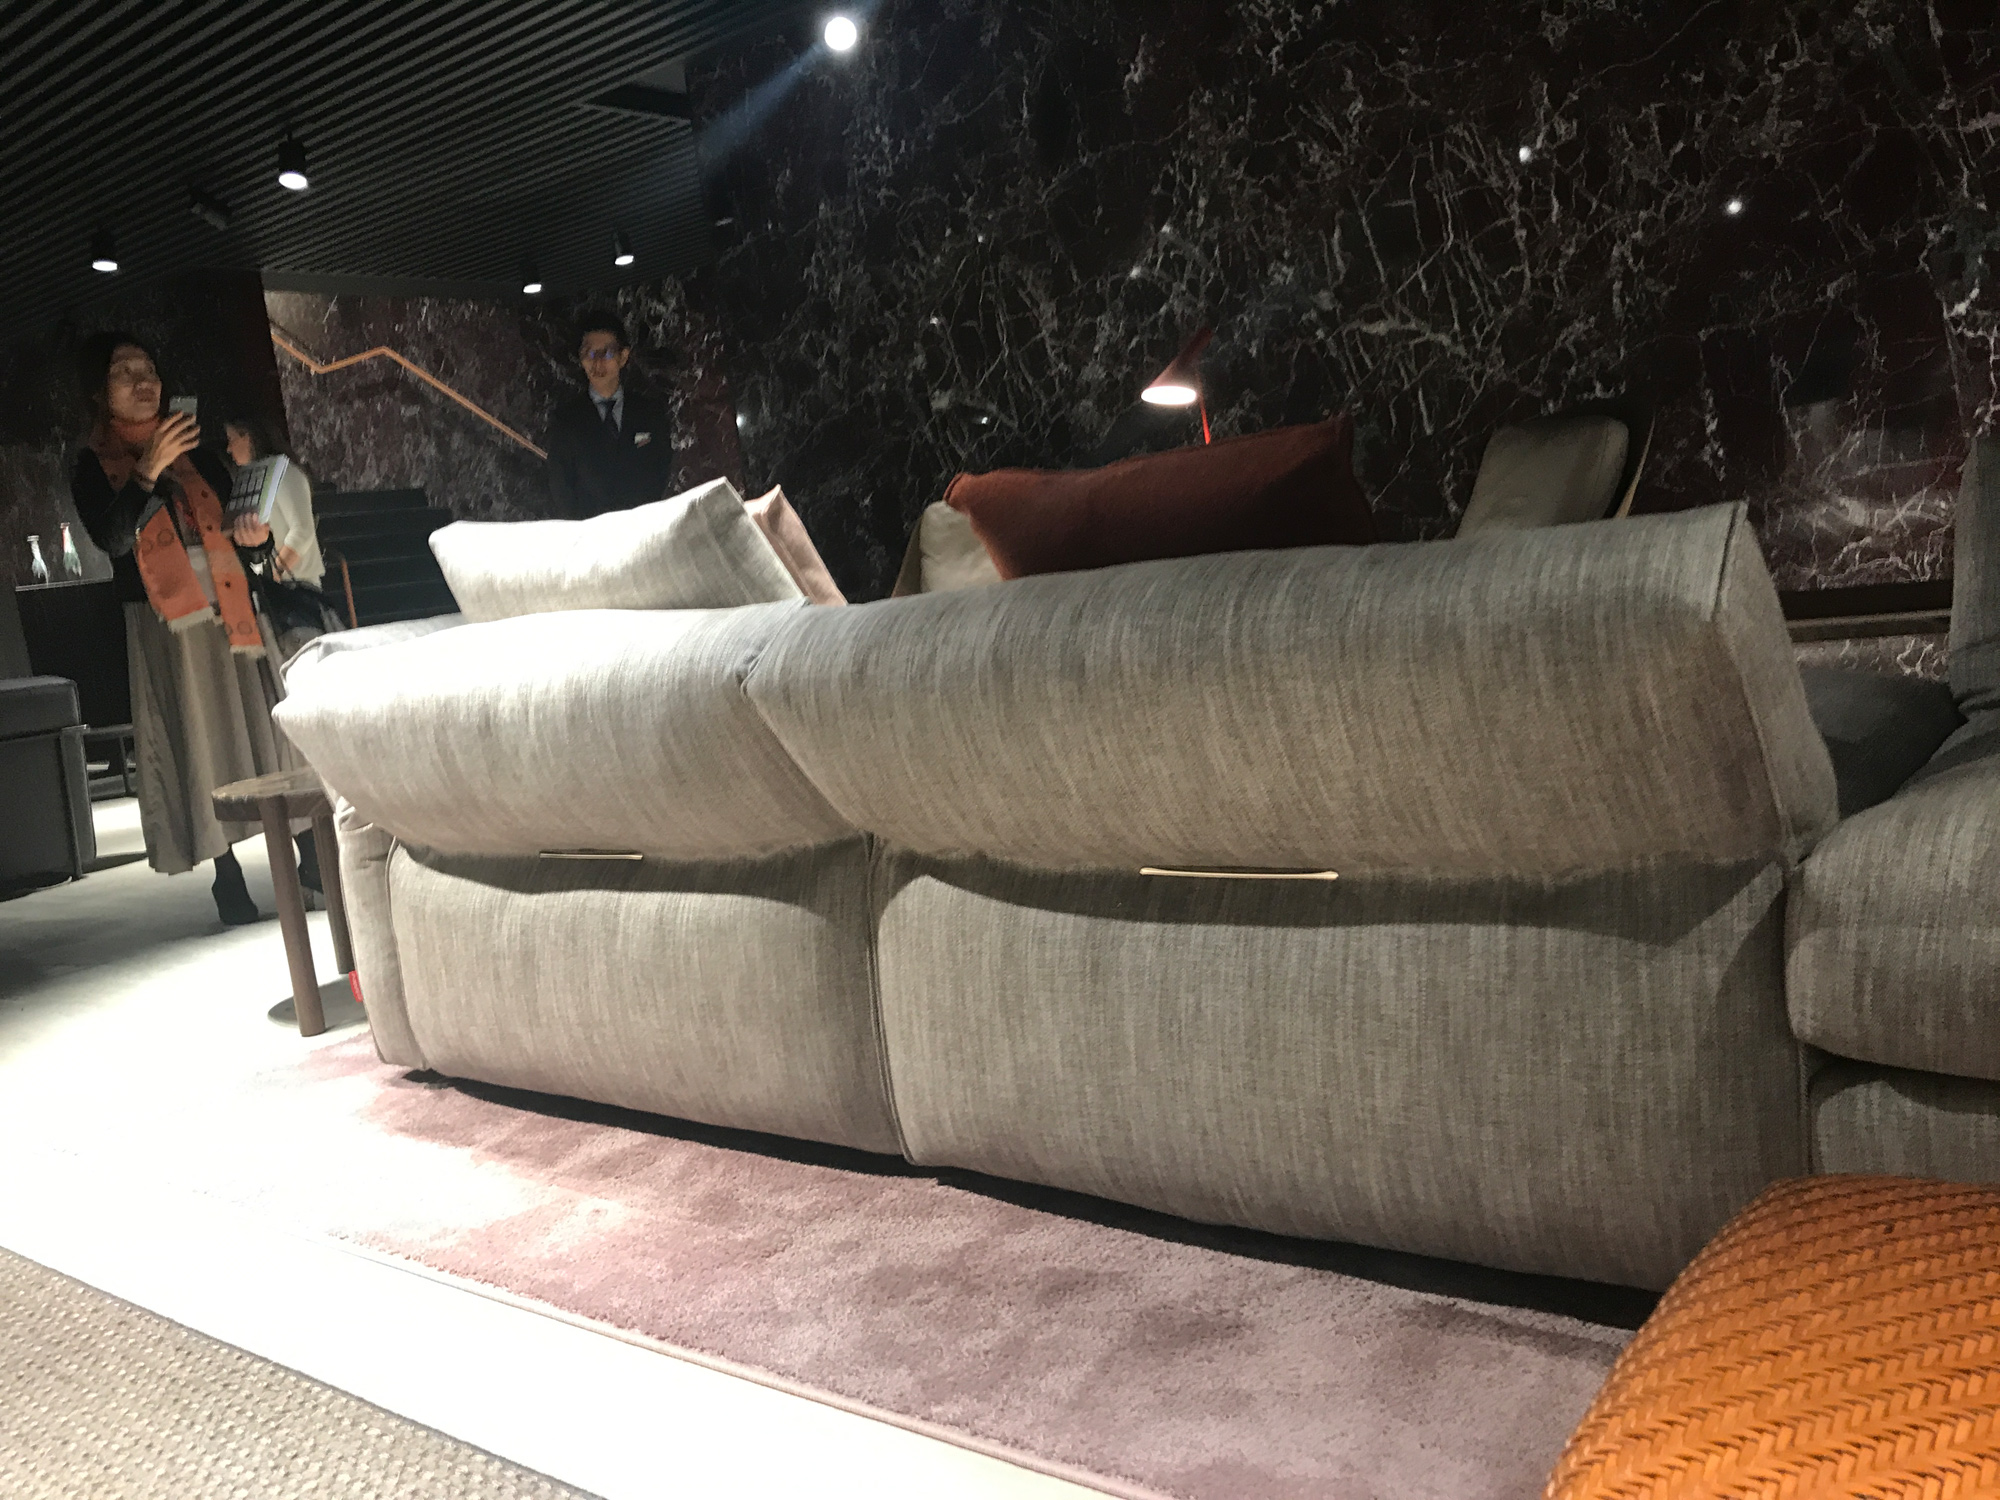 Flexform Feel Good Sessel Preis Flexform Adda Sofa Design Antonio Citterio 2017